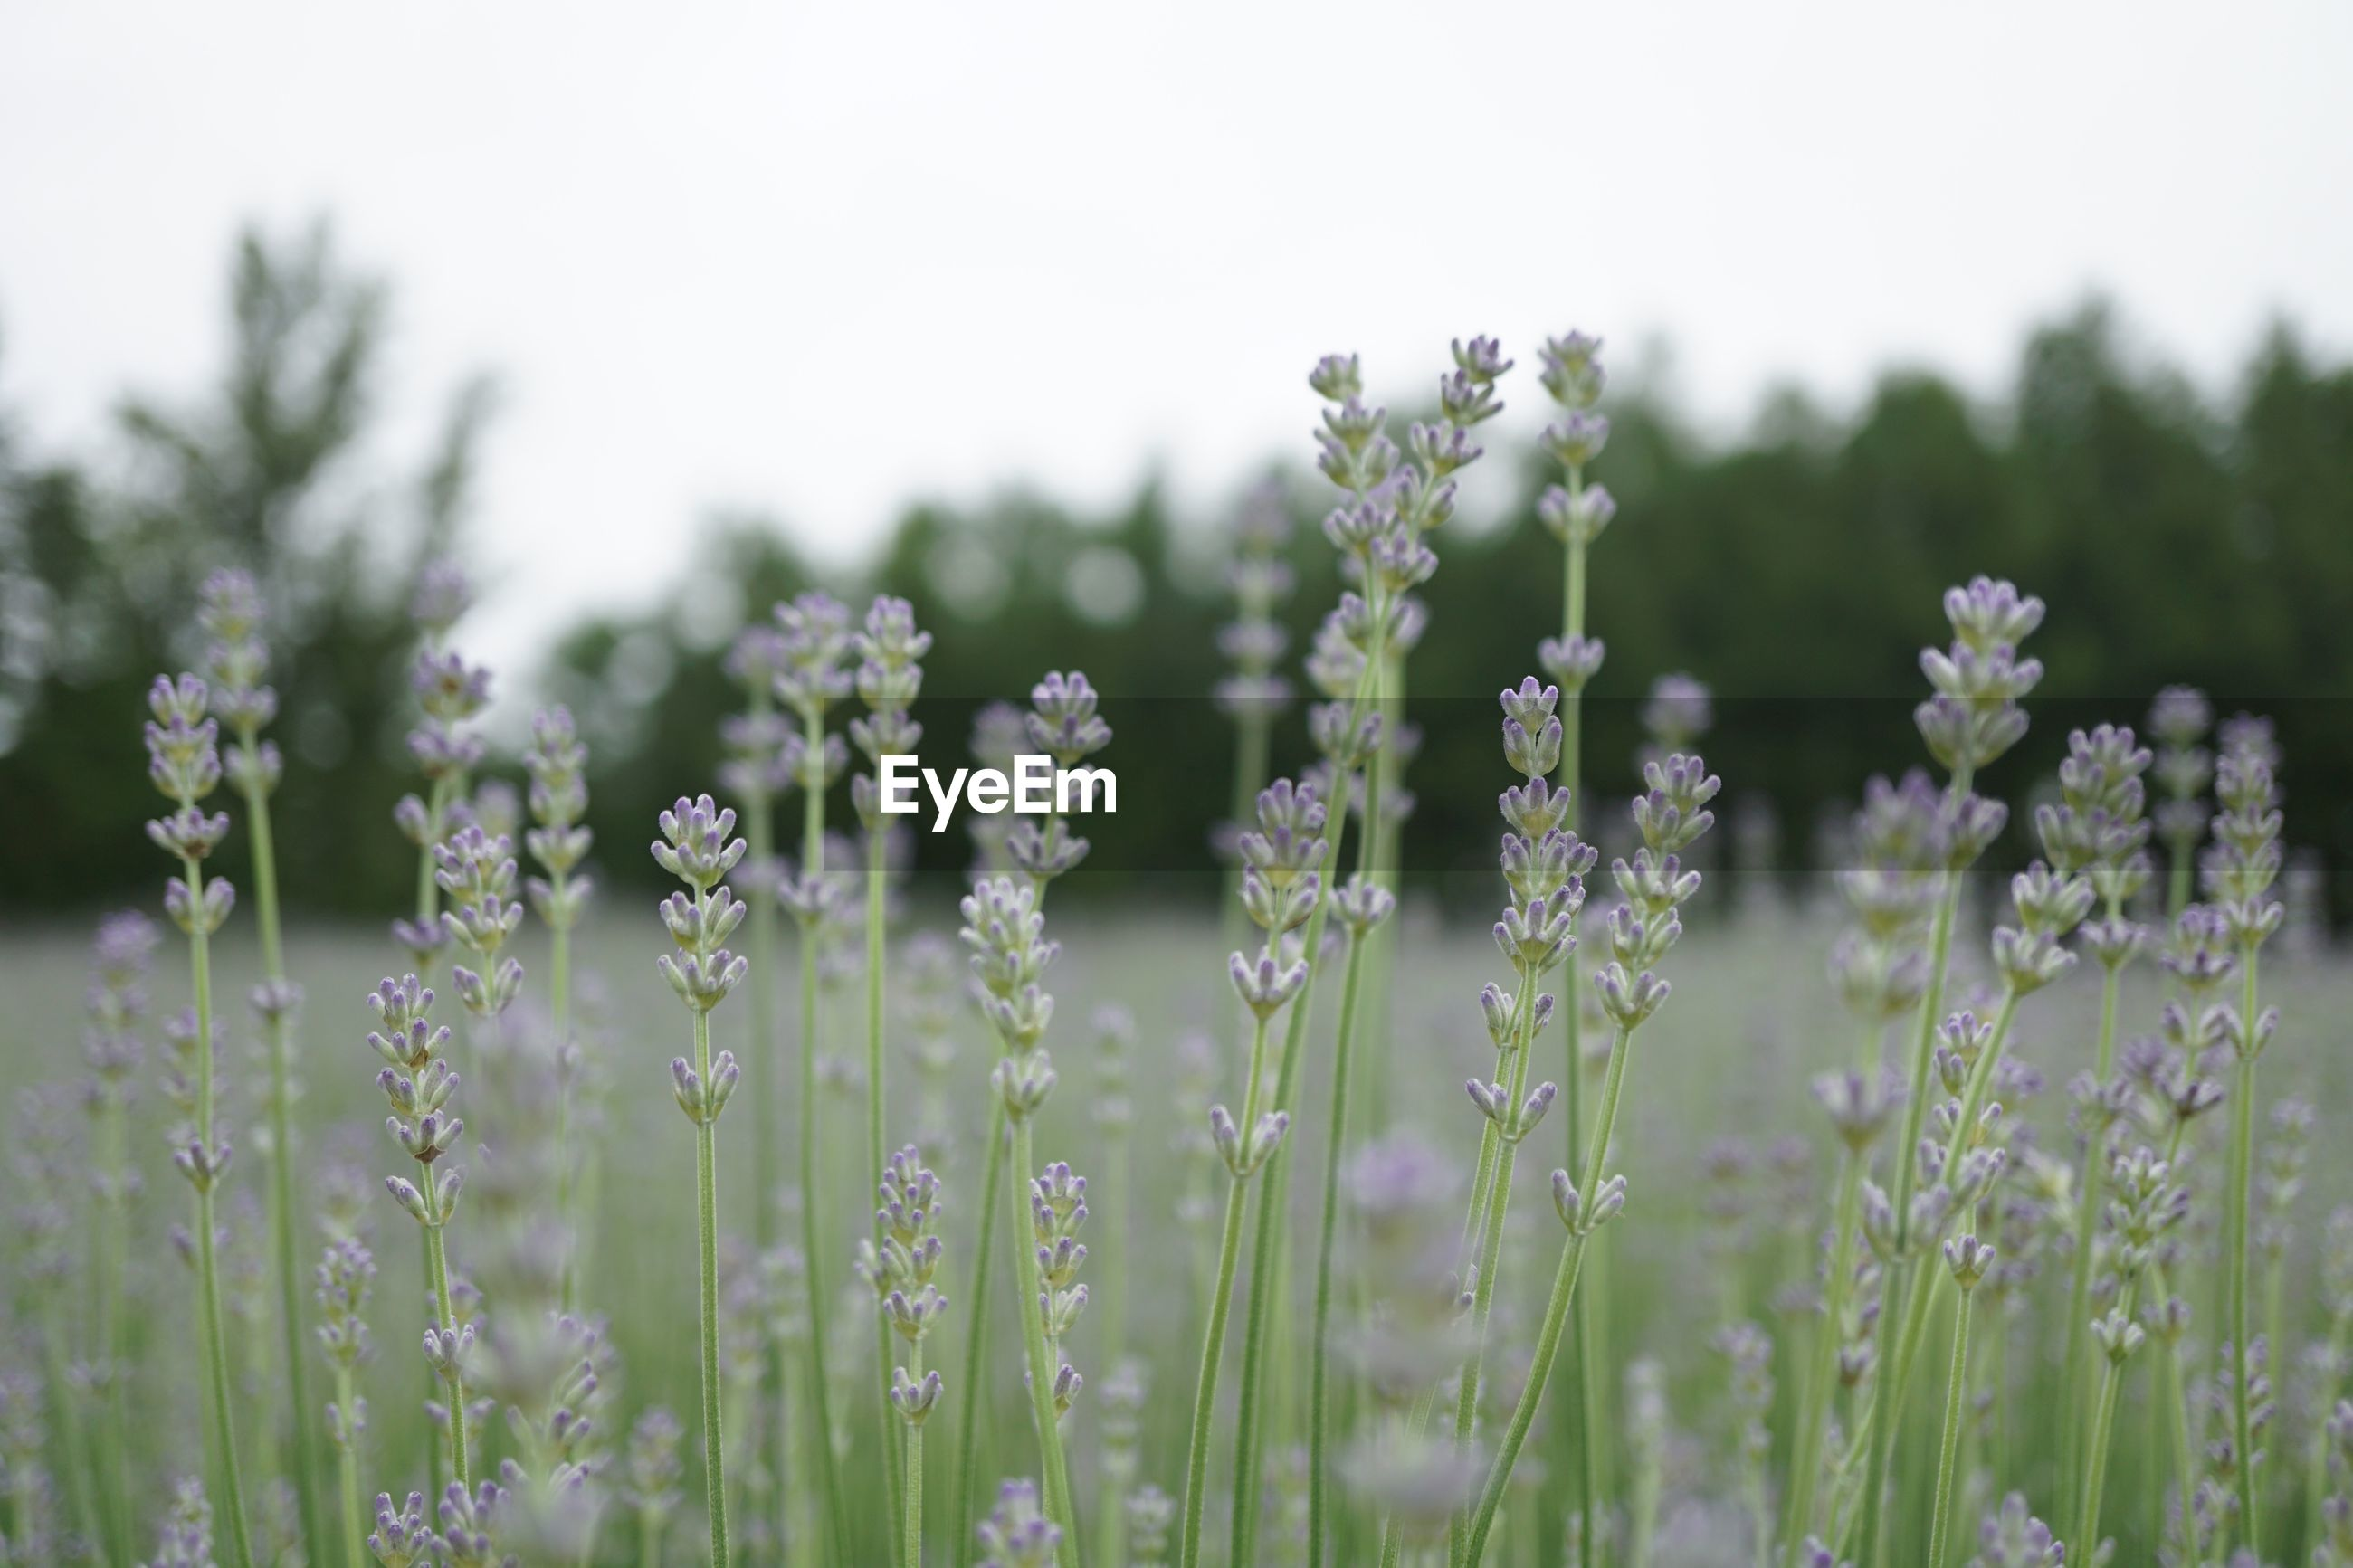 growth, plant, beauty in nature, field, land, flower, flowering plant, selective focus, fragility, vulnerability, tranquility, nature, freshness, day, no people, close-up, focus on foreground, green color, outdoors, tranquil scene